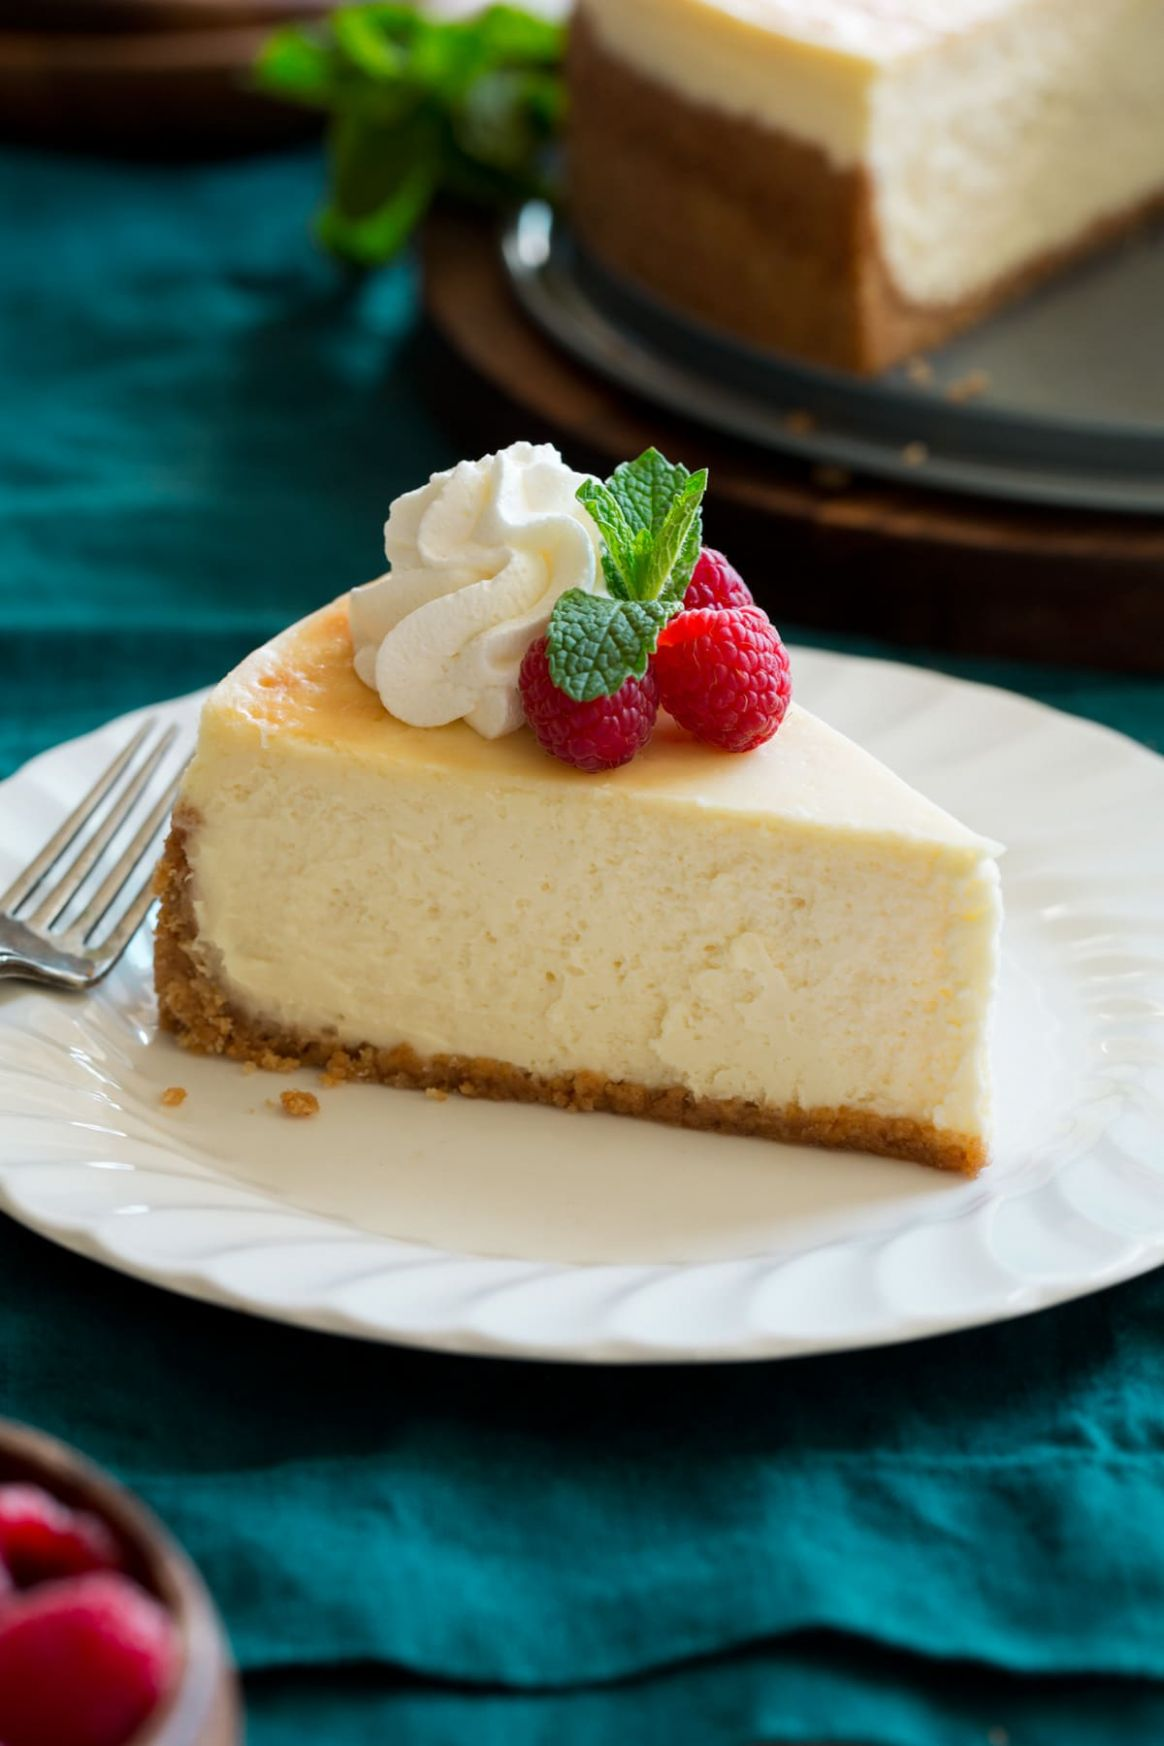 Cheesecake Recipe - Dessert Recipes Cheesecake